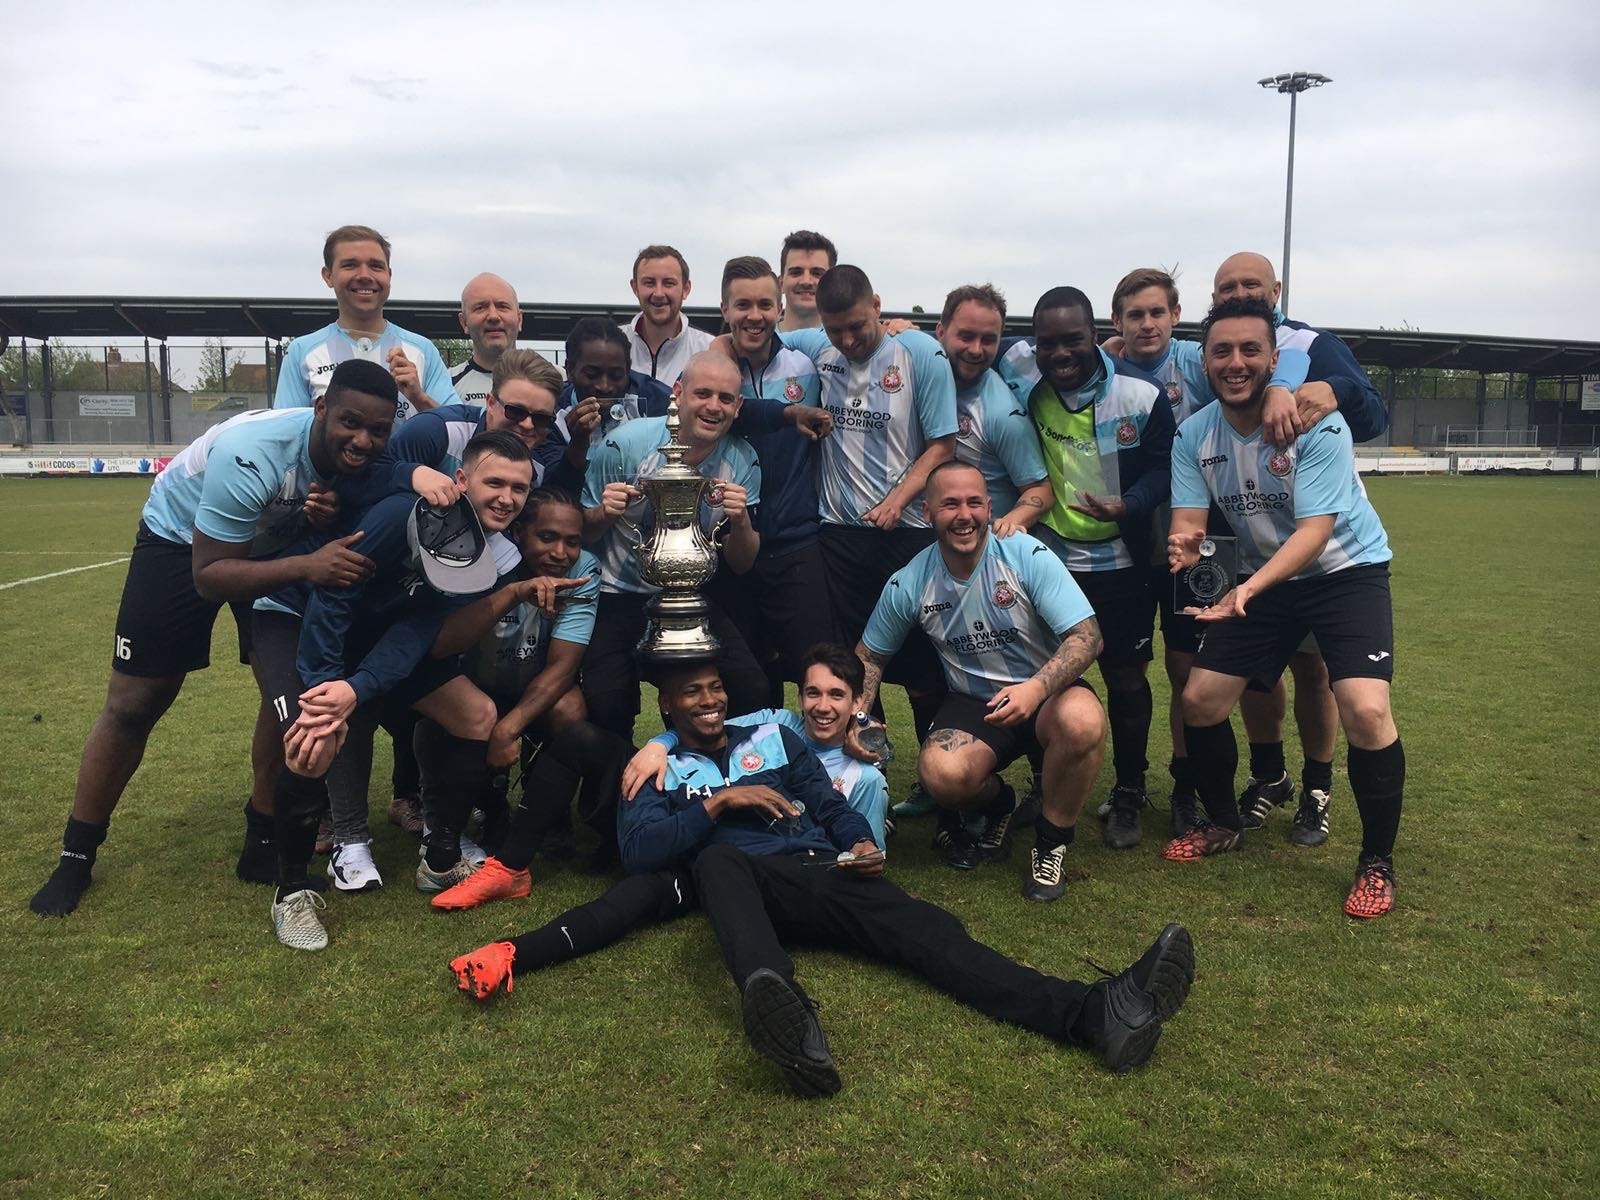 Kent Wanderers celebrate their Cup Winning achievement